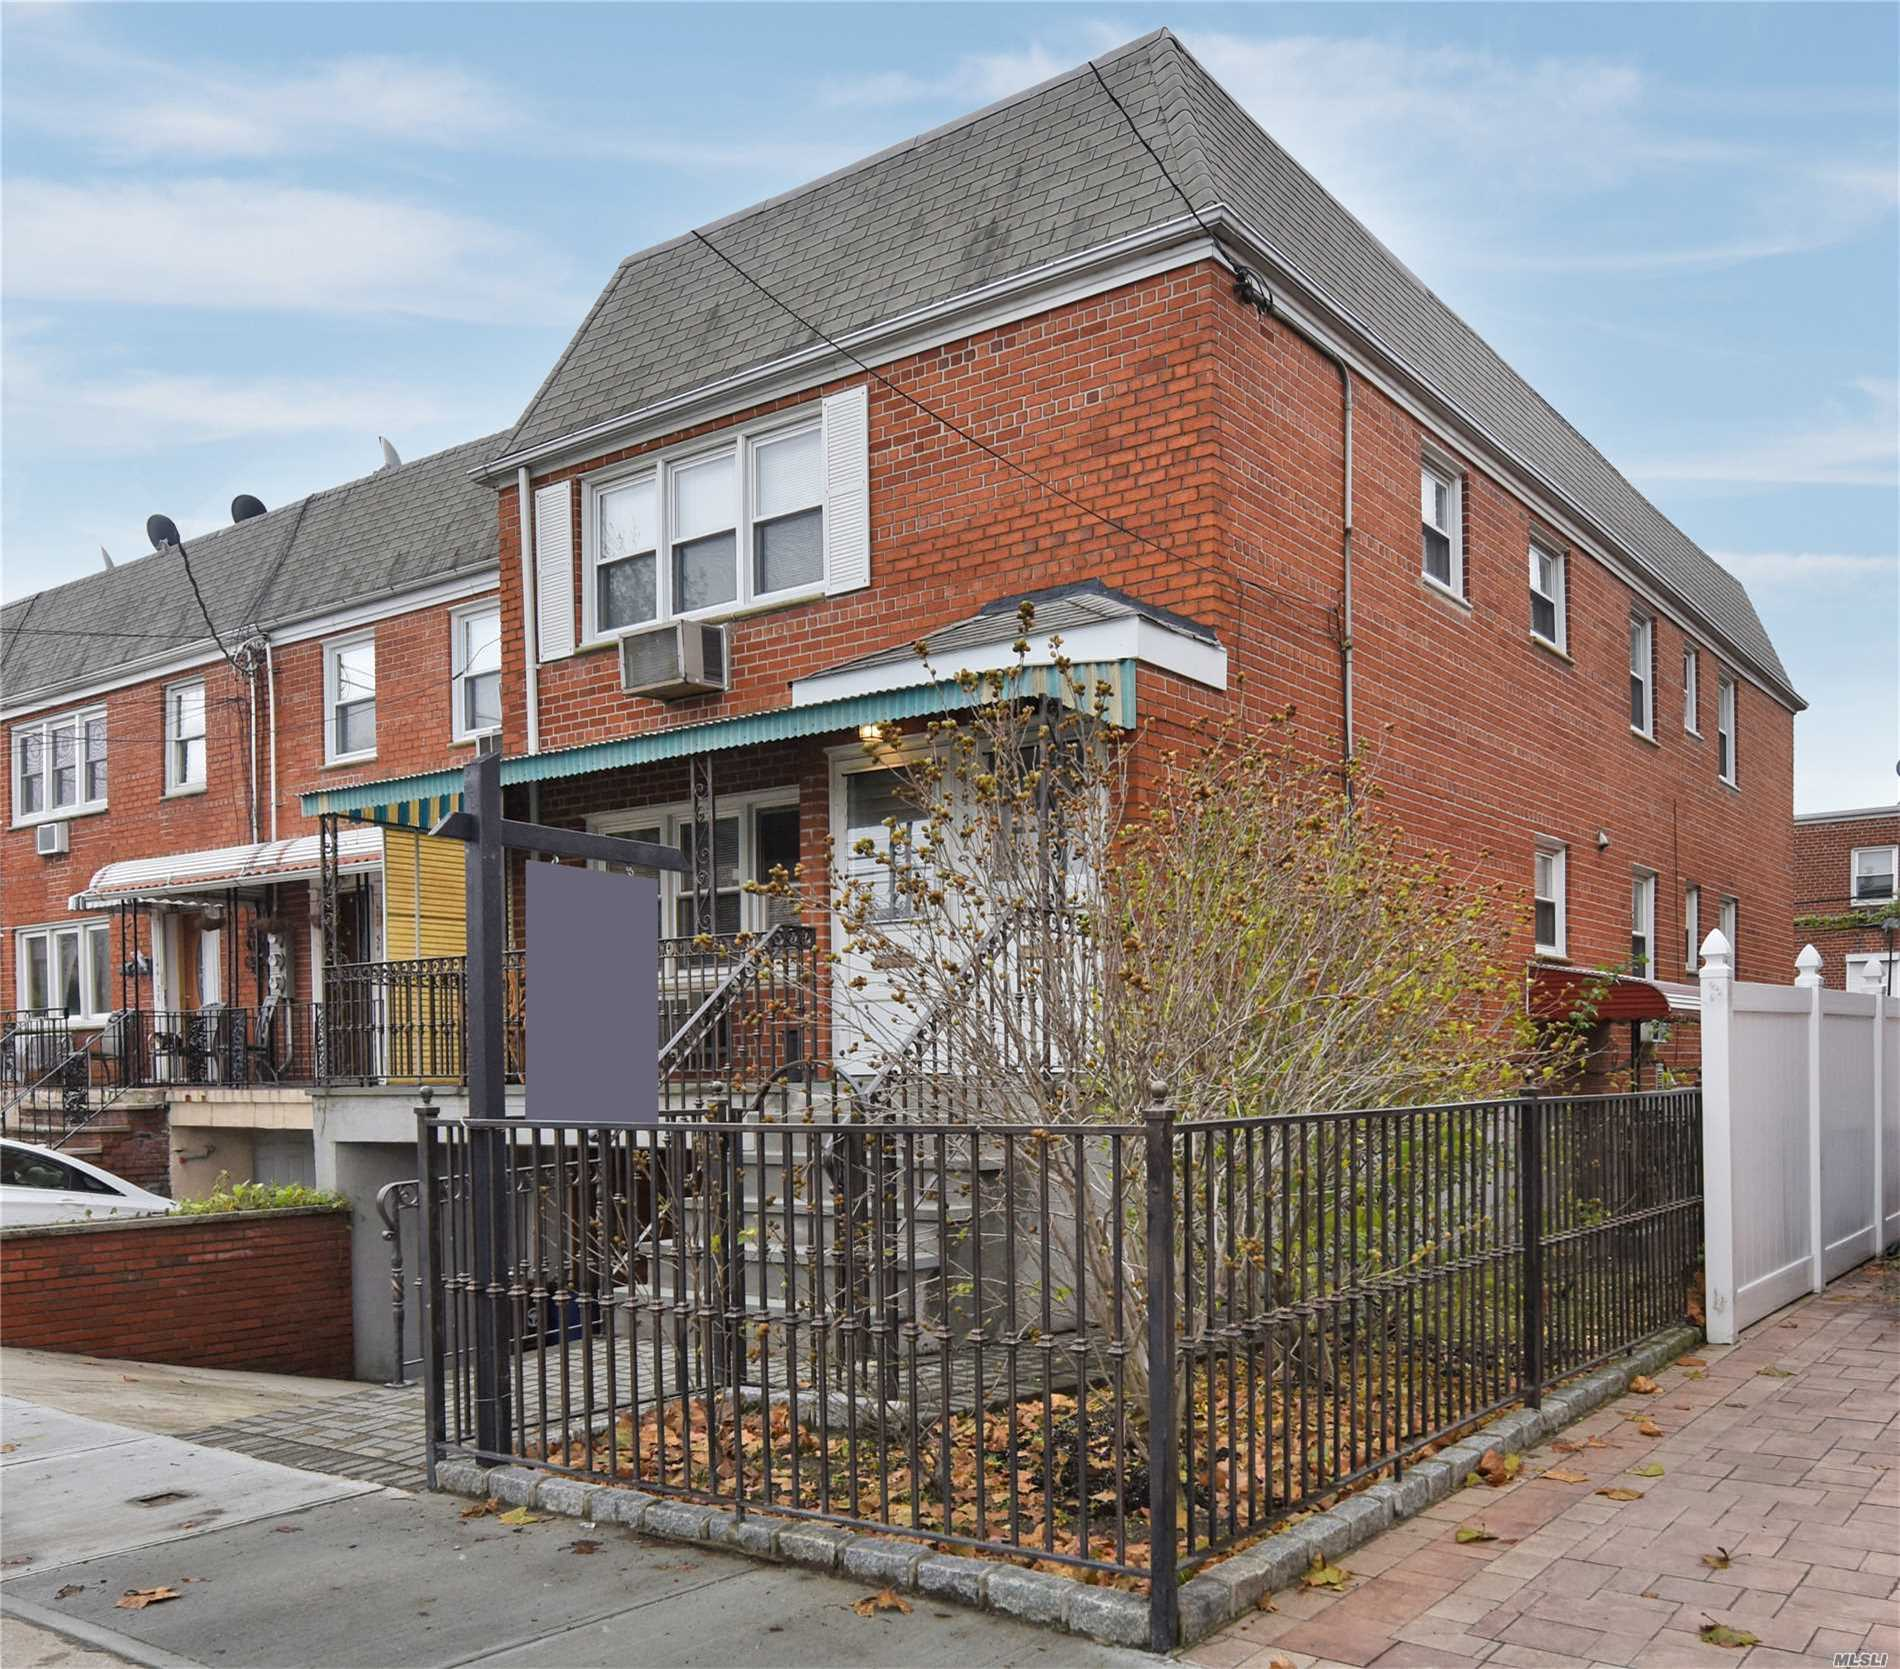 Property for sale at 144-32 25th Drive, Flushing NY 11354, Flushing,  New York 11354